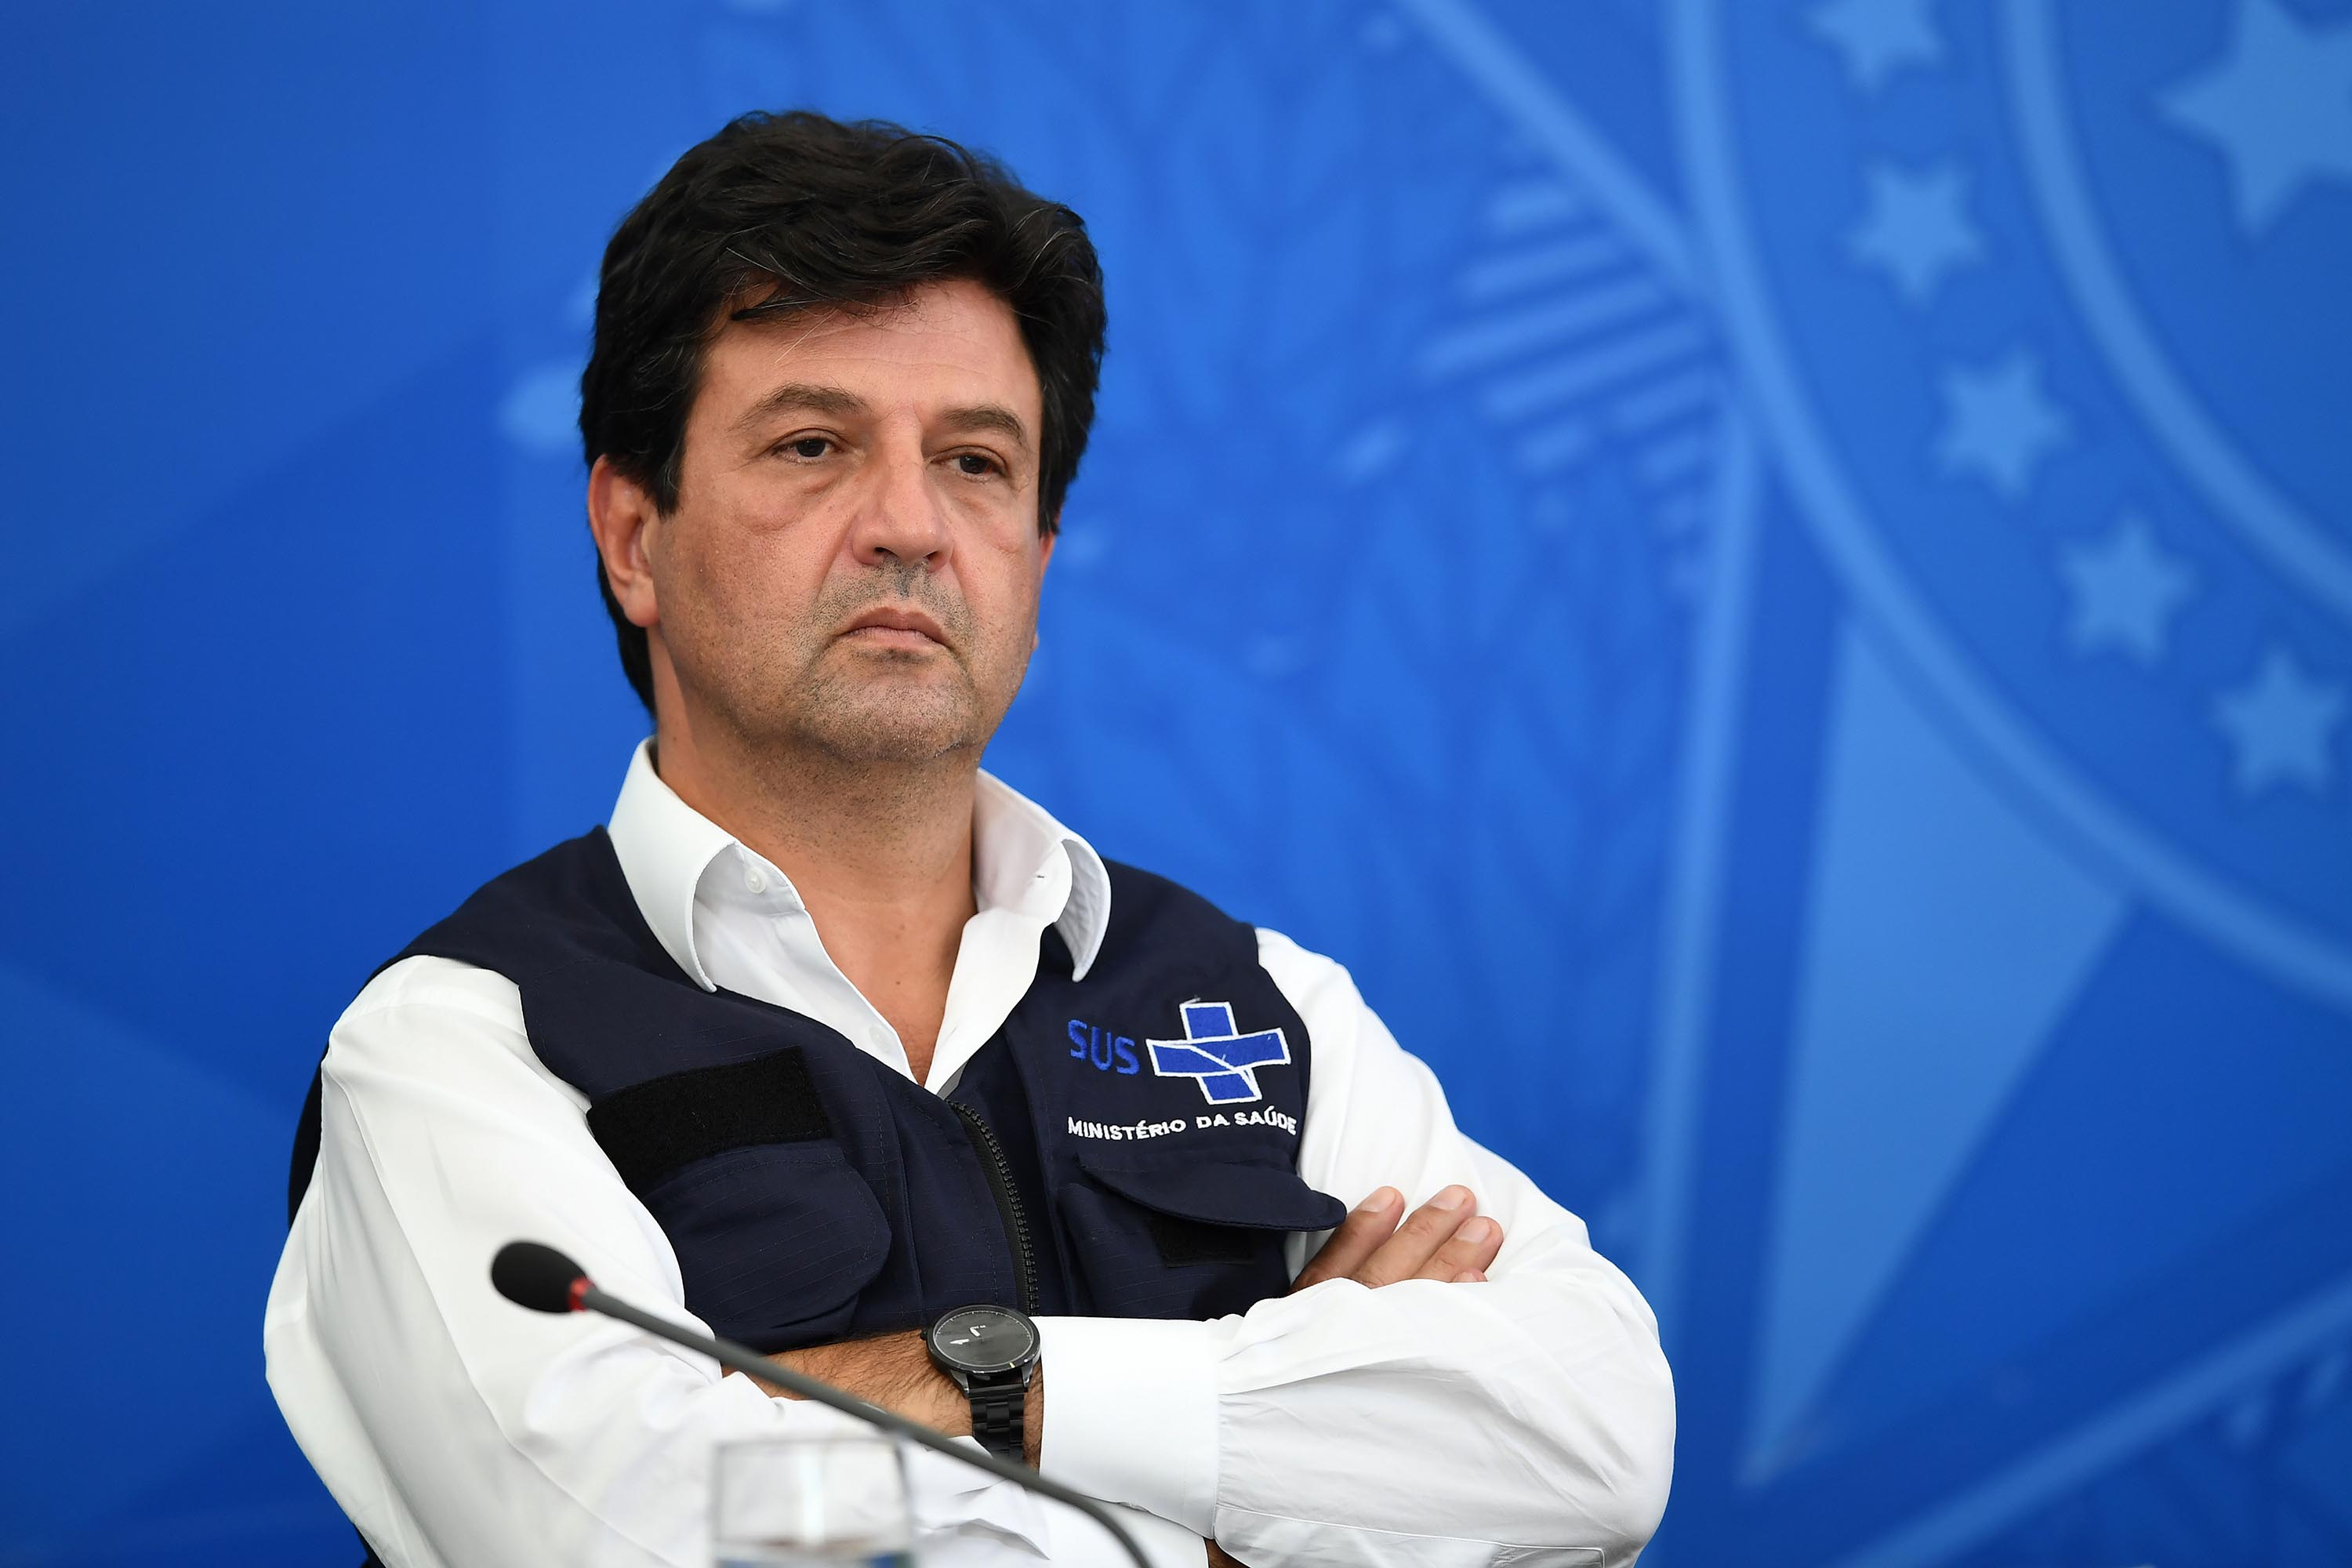 Brazil's Health Minister Luiz Henrique Mandetta is seen during a press conference on April 3.